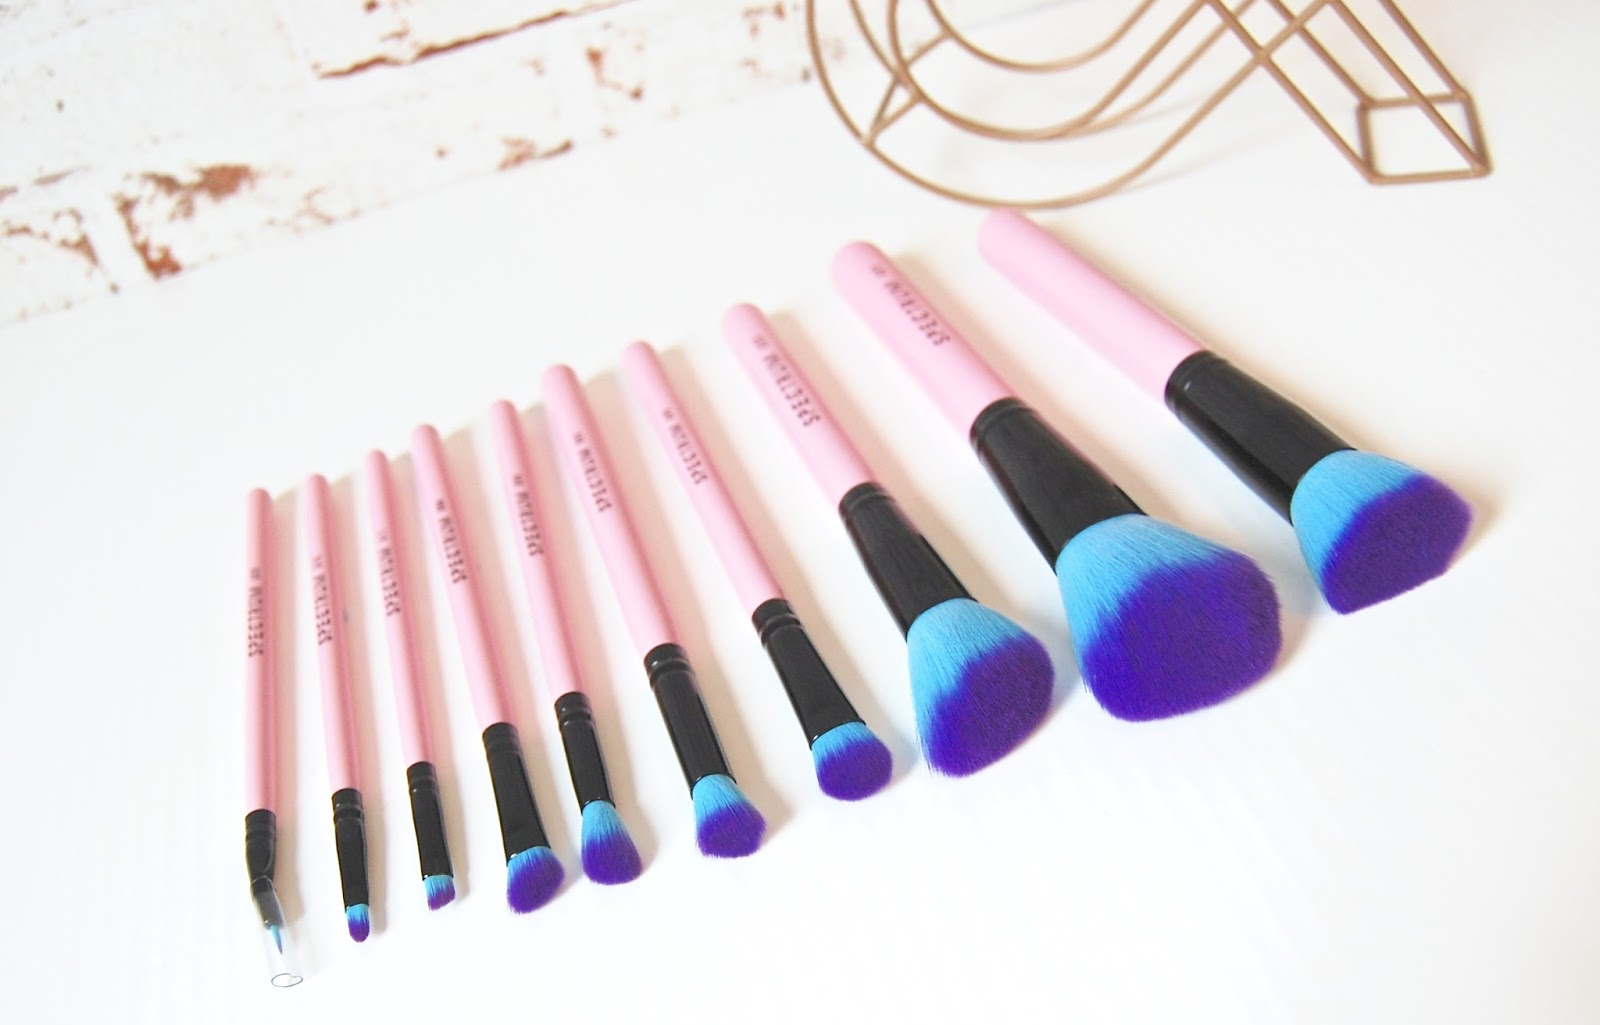 See my Spectrum brushes 10 peice collection review here